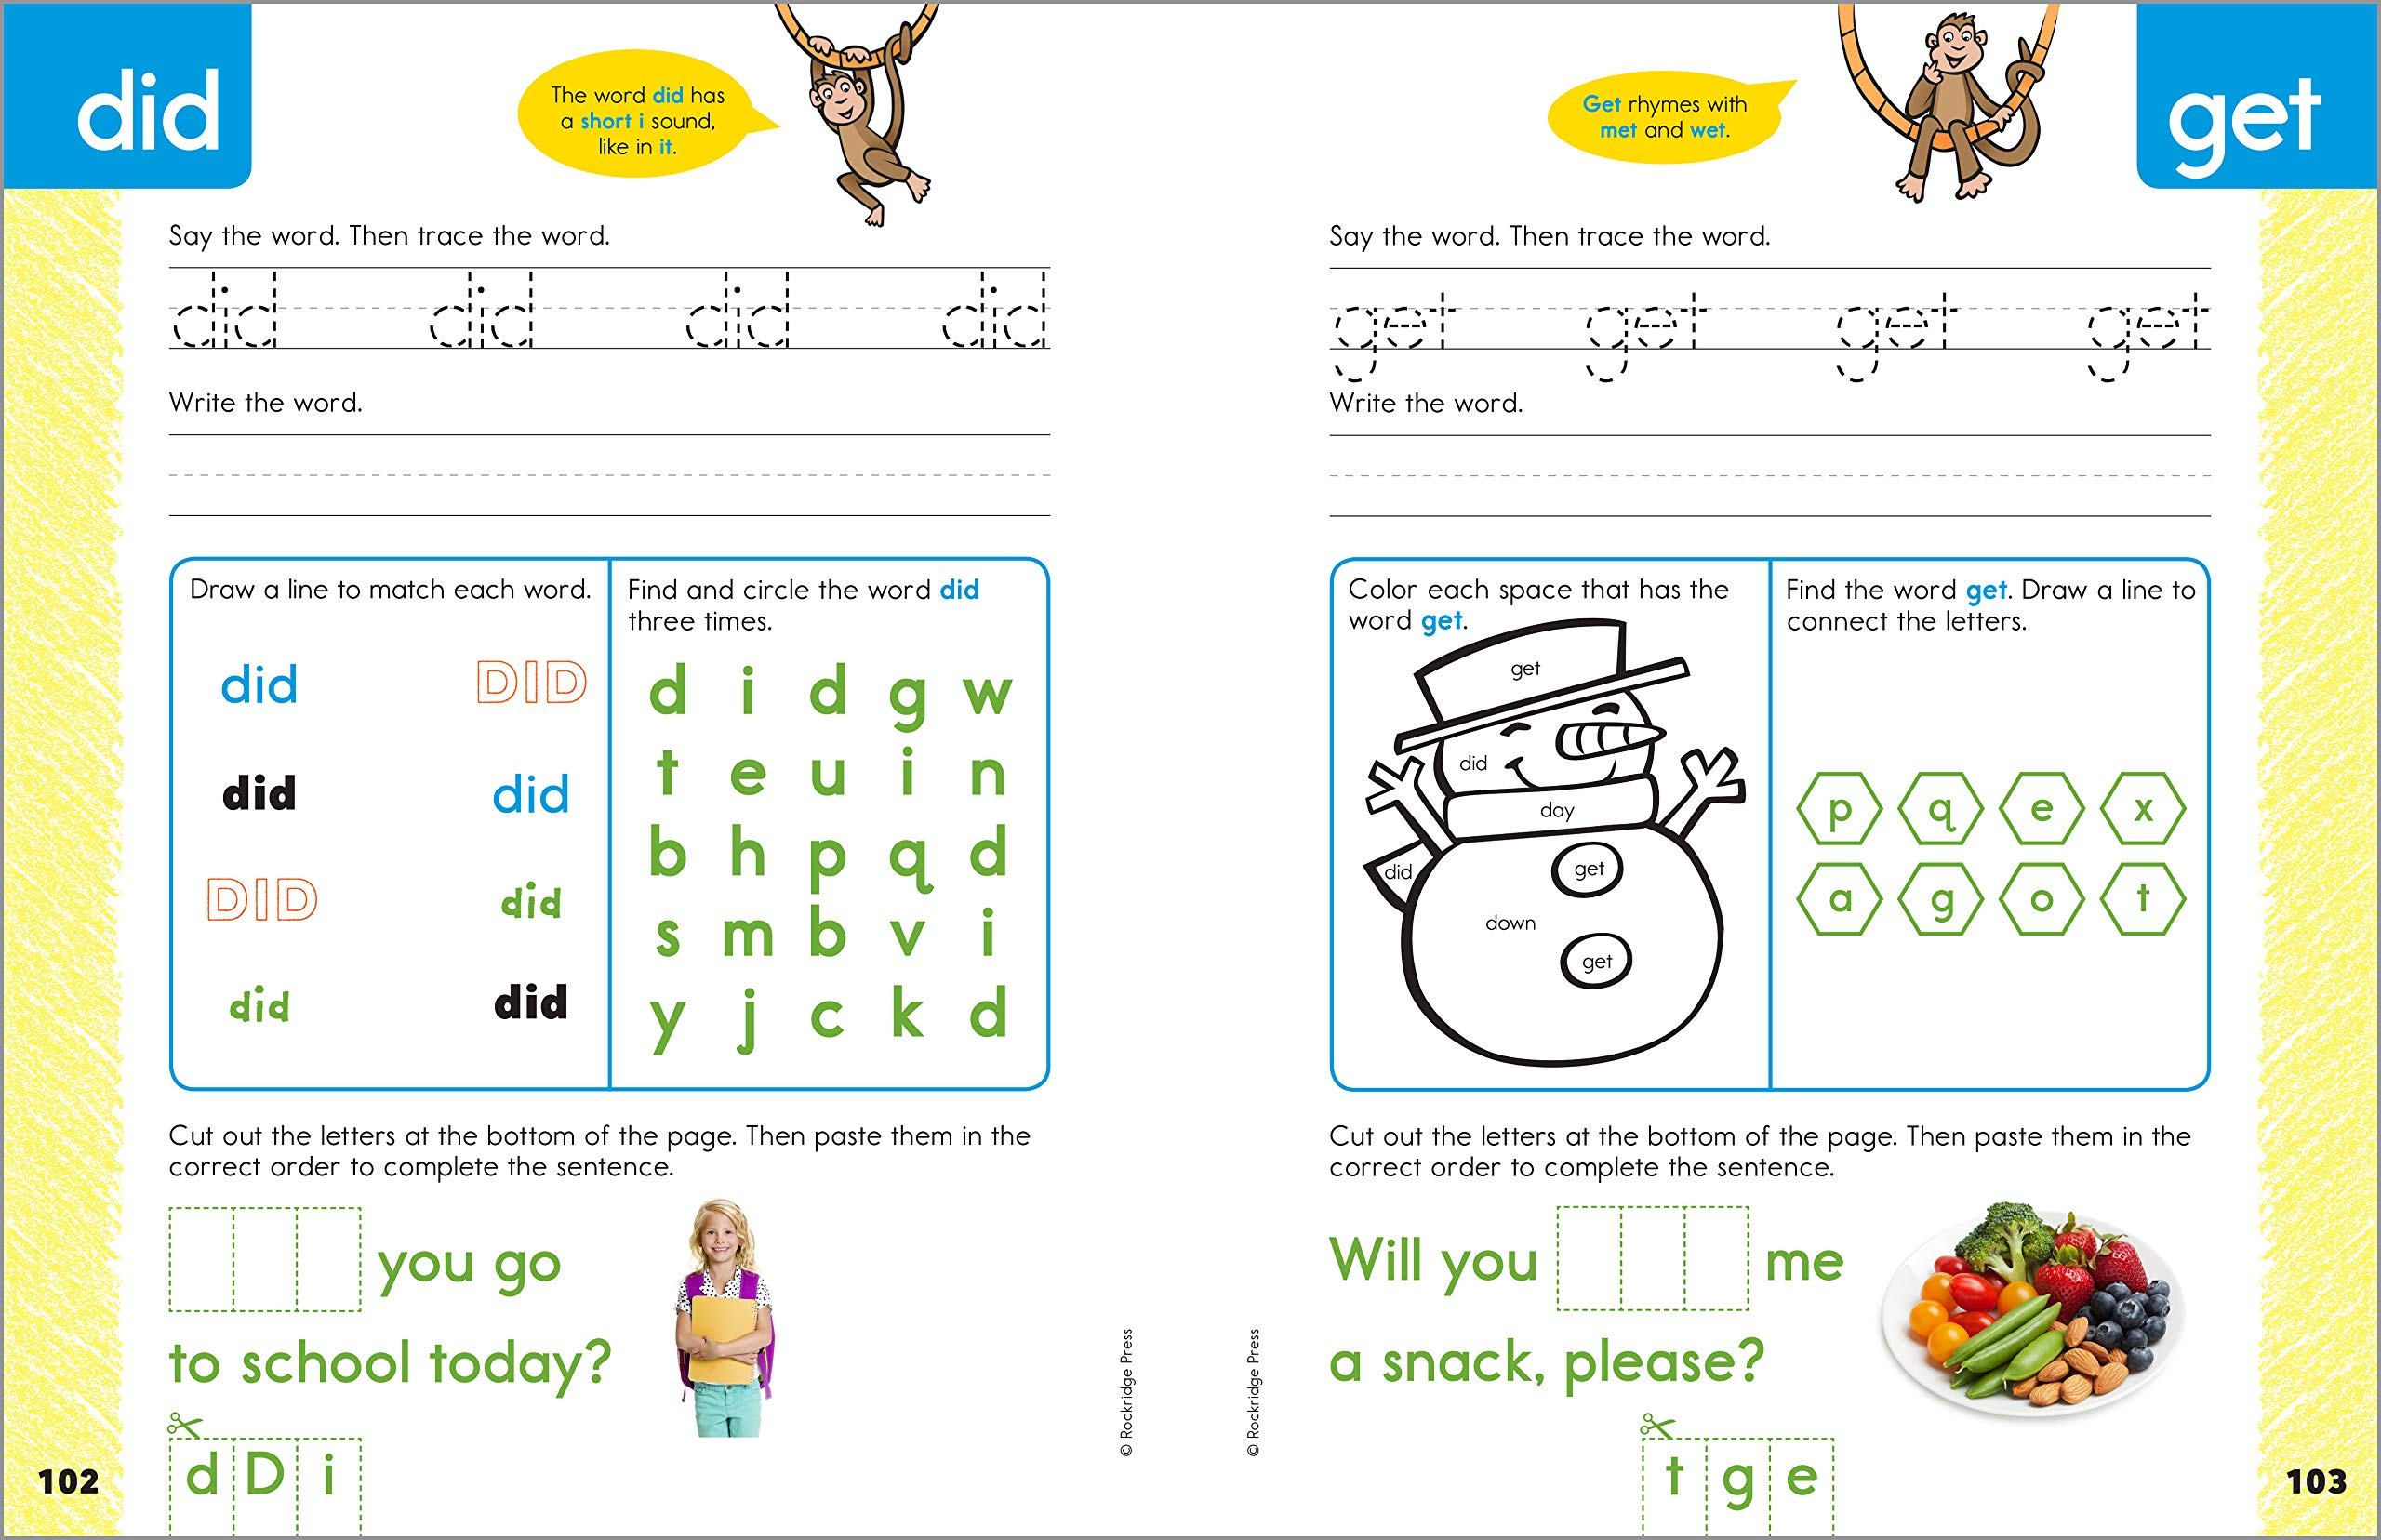 My Sight Words Workbook: 101 High-Frequency Words Plus Games & Activities!  book for sight words